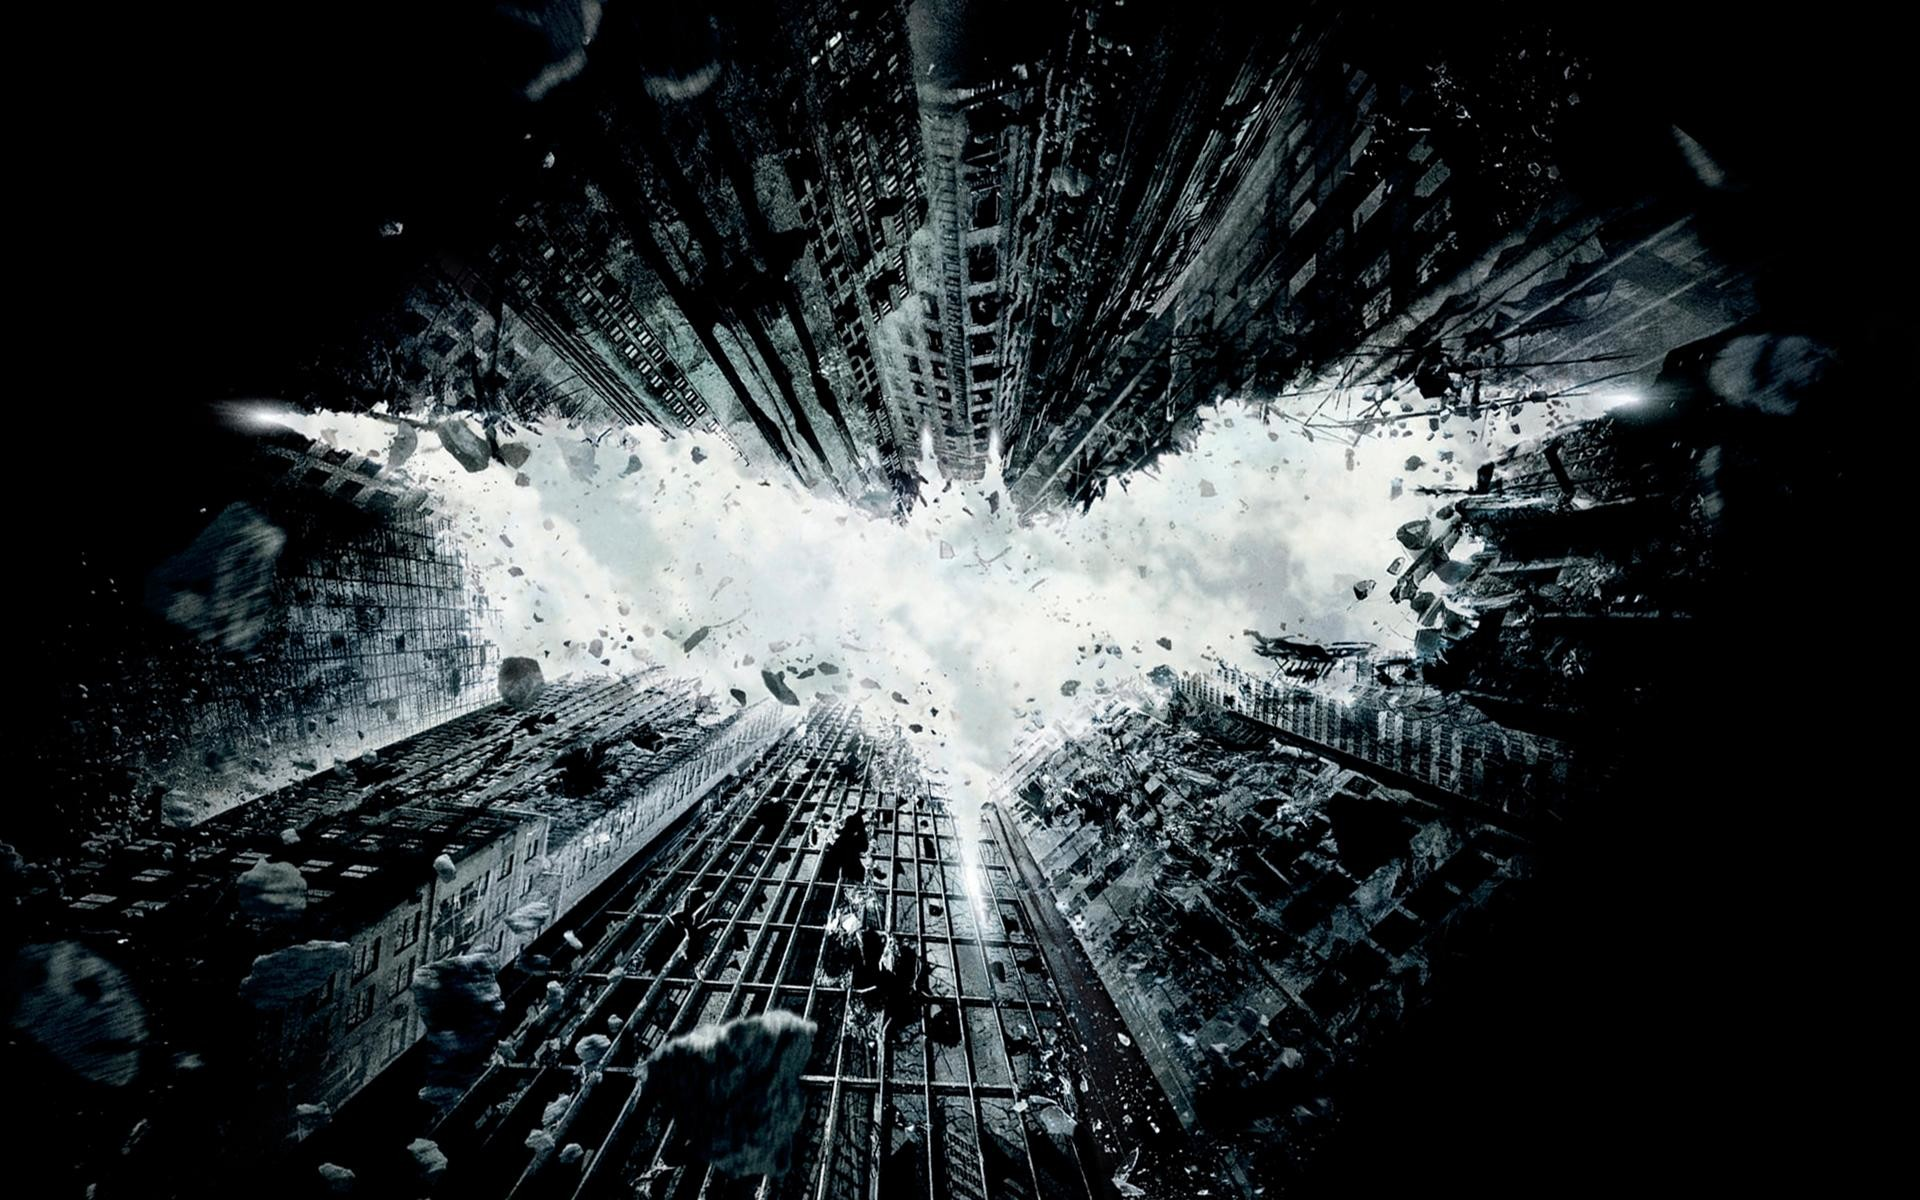 1920x1200 The Dark Knight Rises HD wallpapers - Batman movie backgrounds